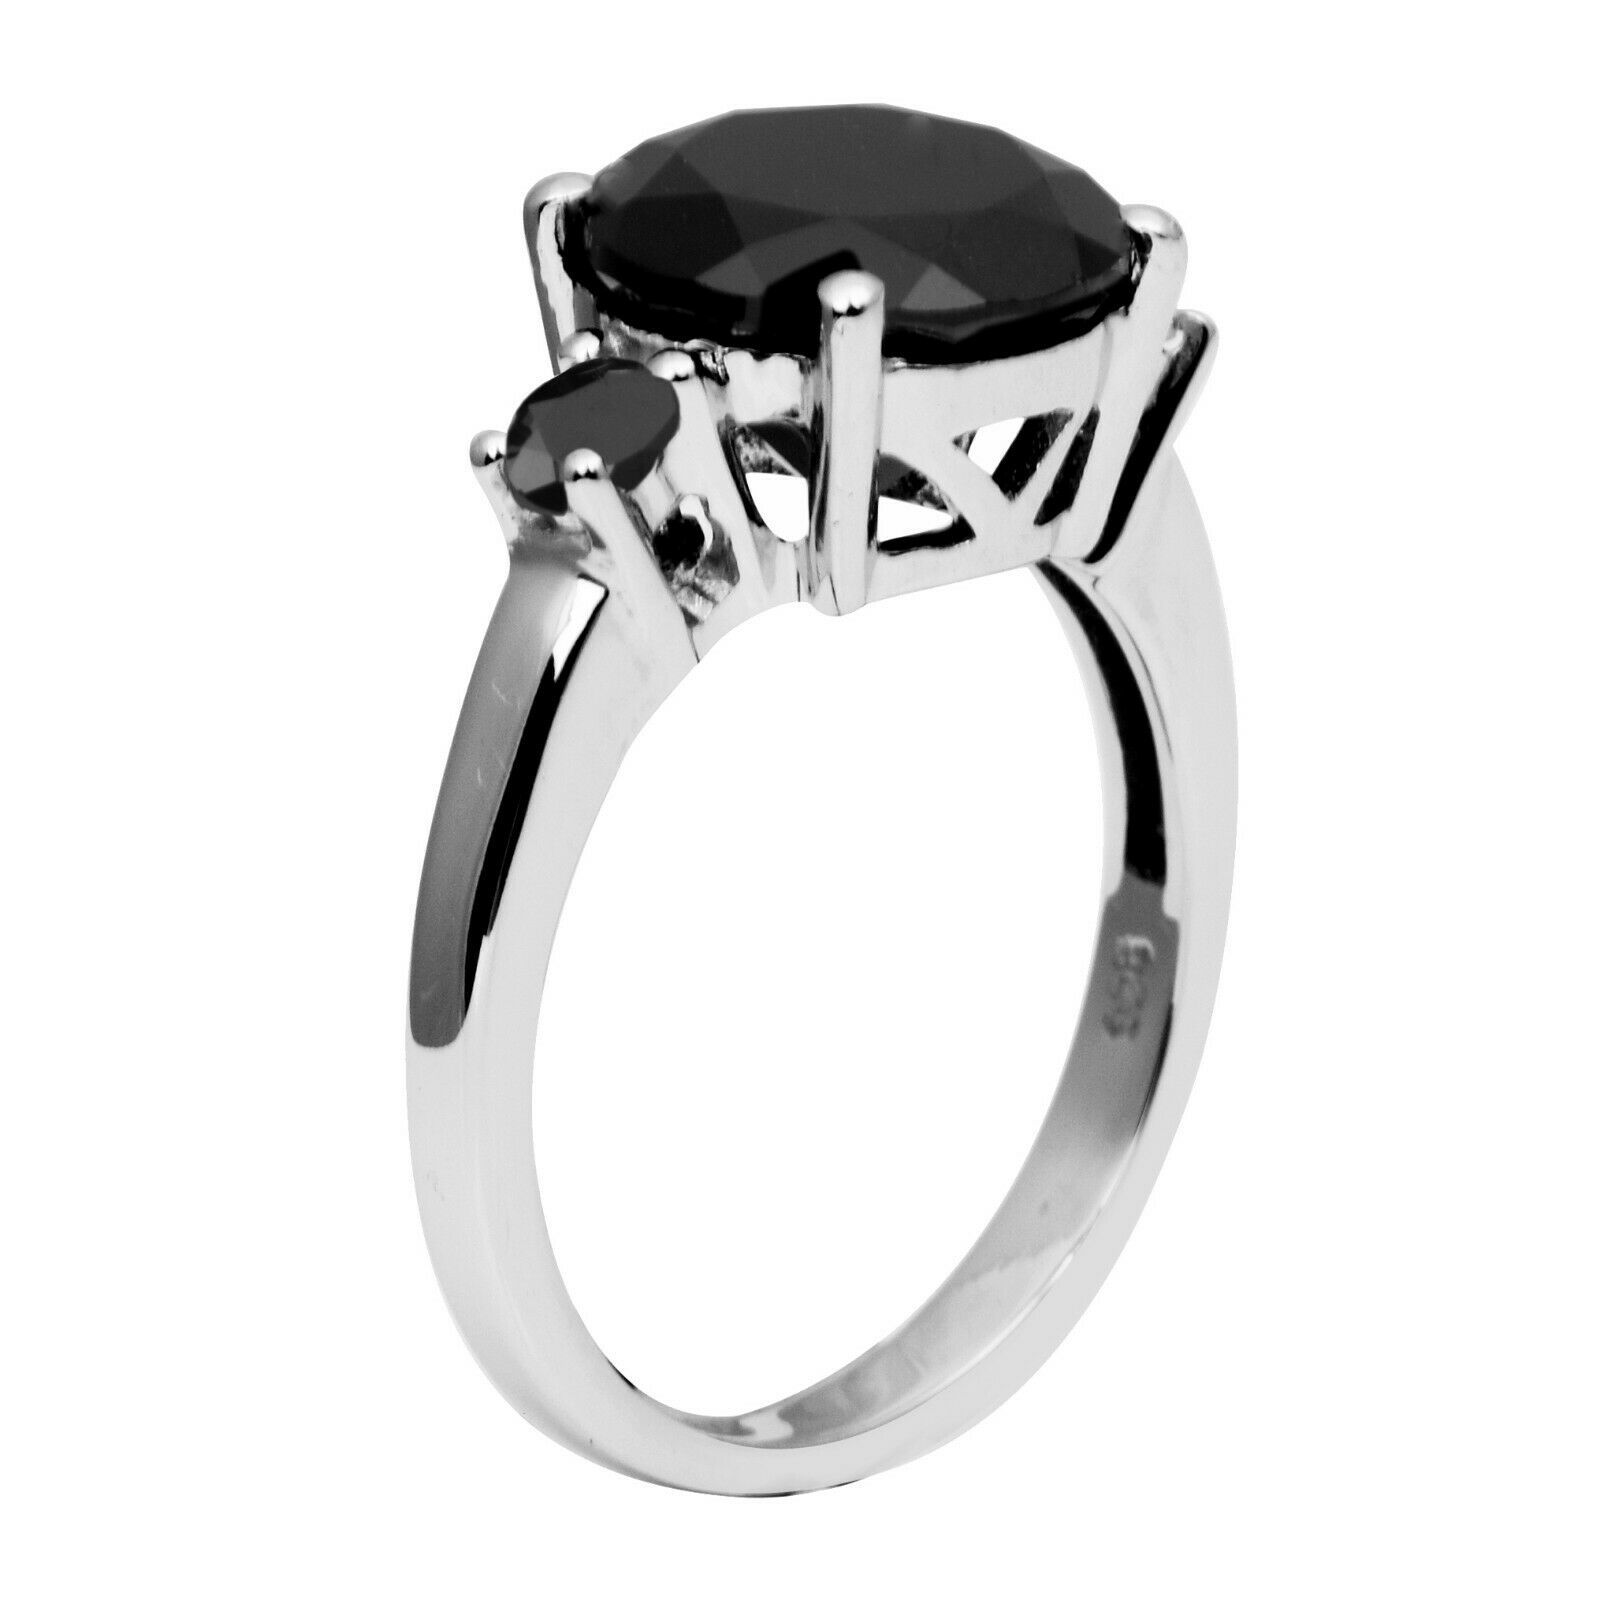 Shine Jewel 925 Sterling Silver 5.65 Ct Black Onyx Engagement Solitaire Ring